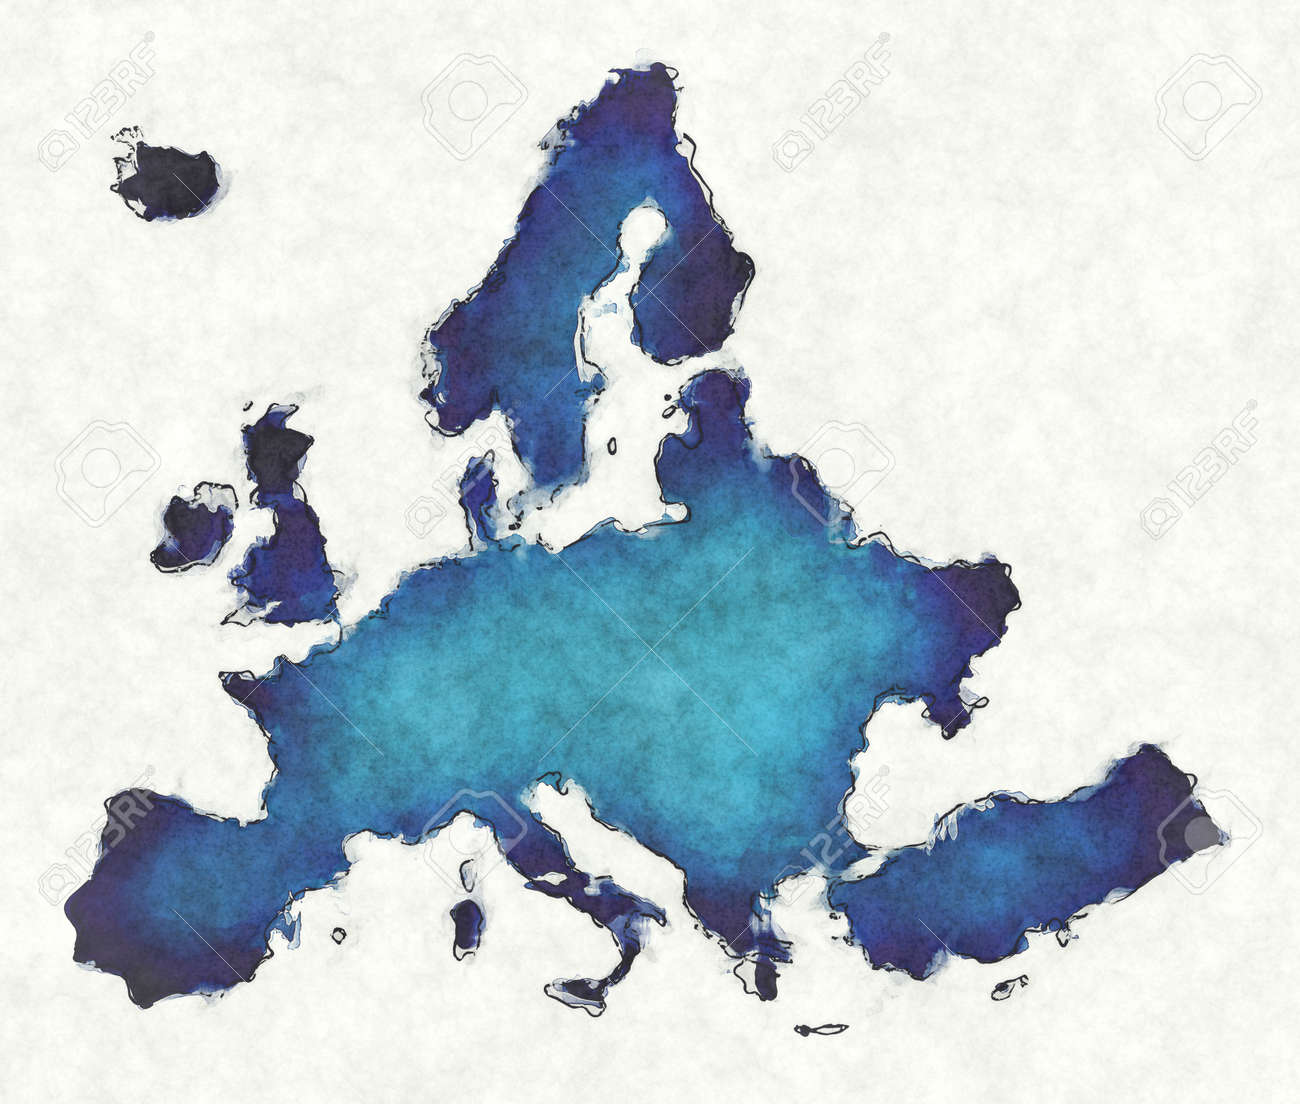 Europe map with drawn lines and blue watercolor illustration - 168026797